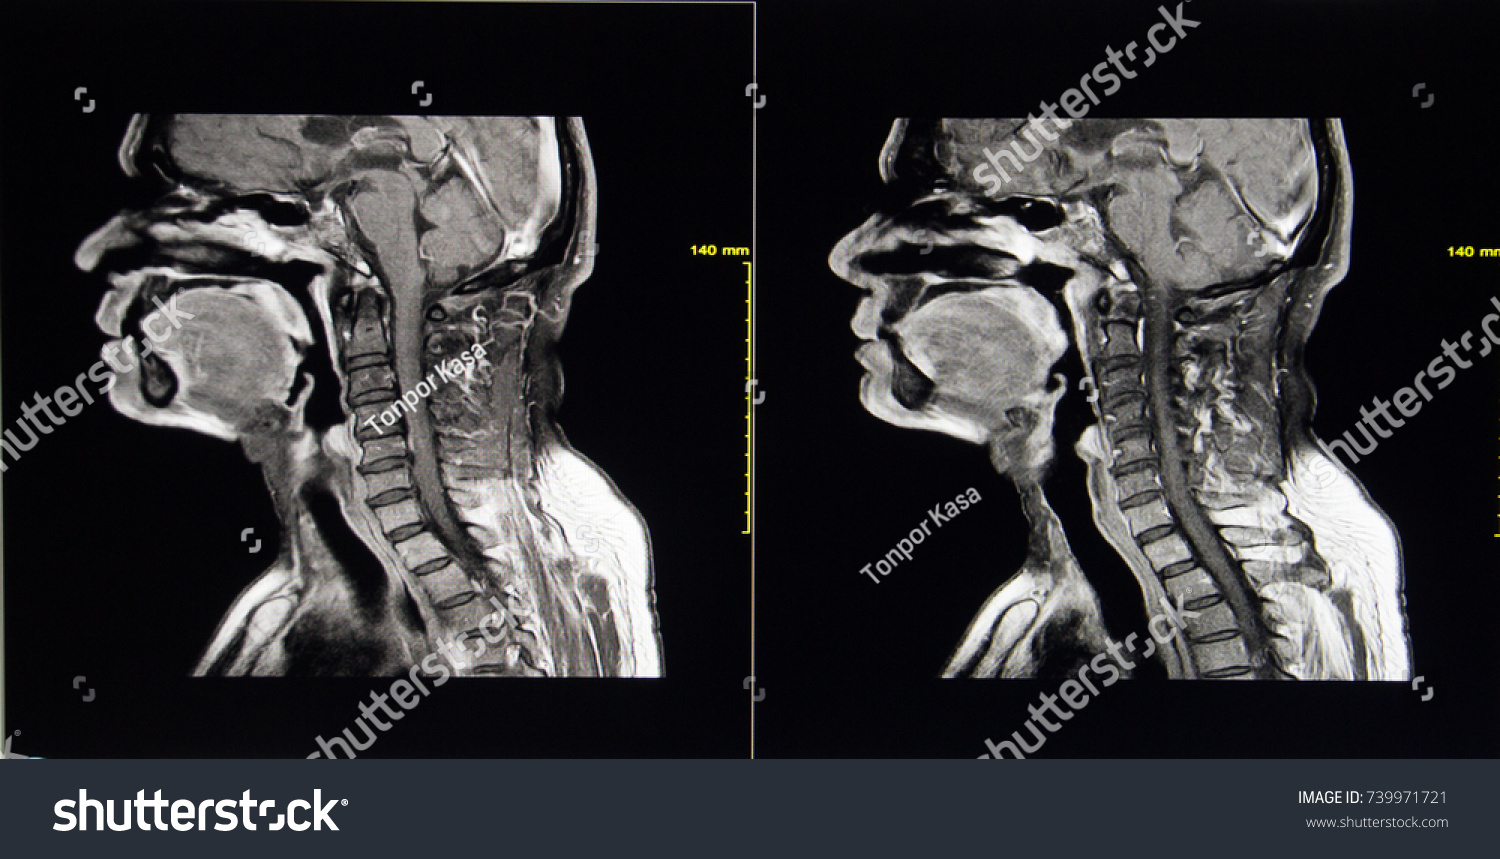 Cervical Spine Mri Image Show 2 Stock Photo Edit Now 739971721